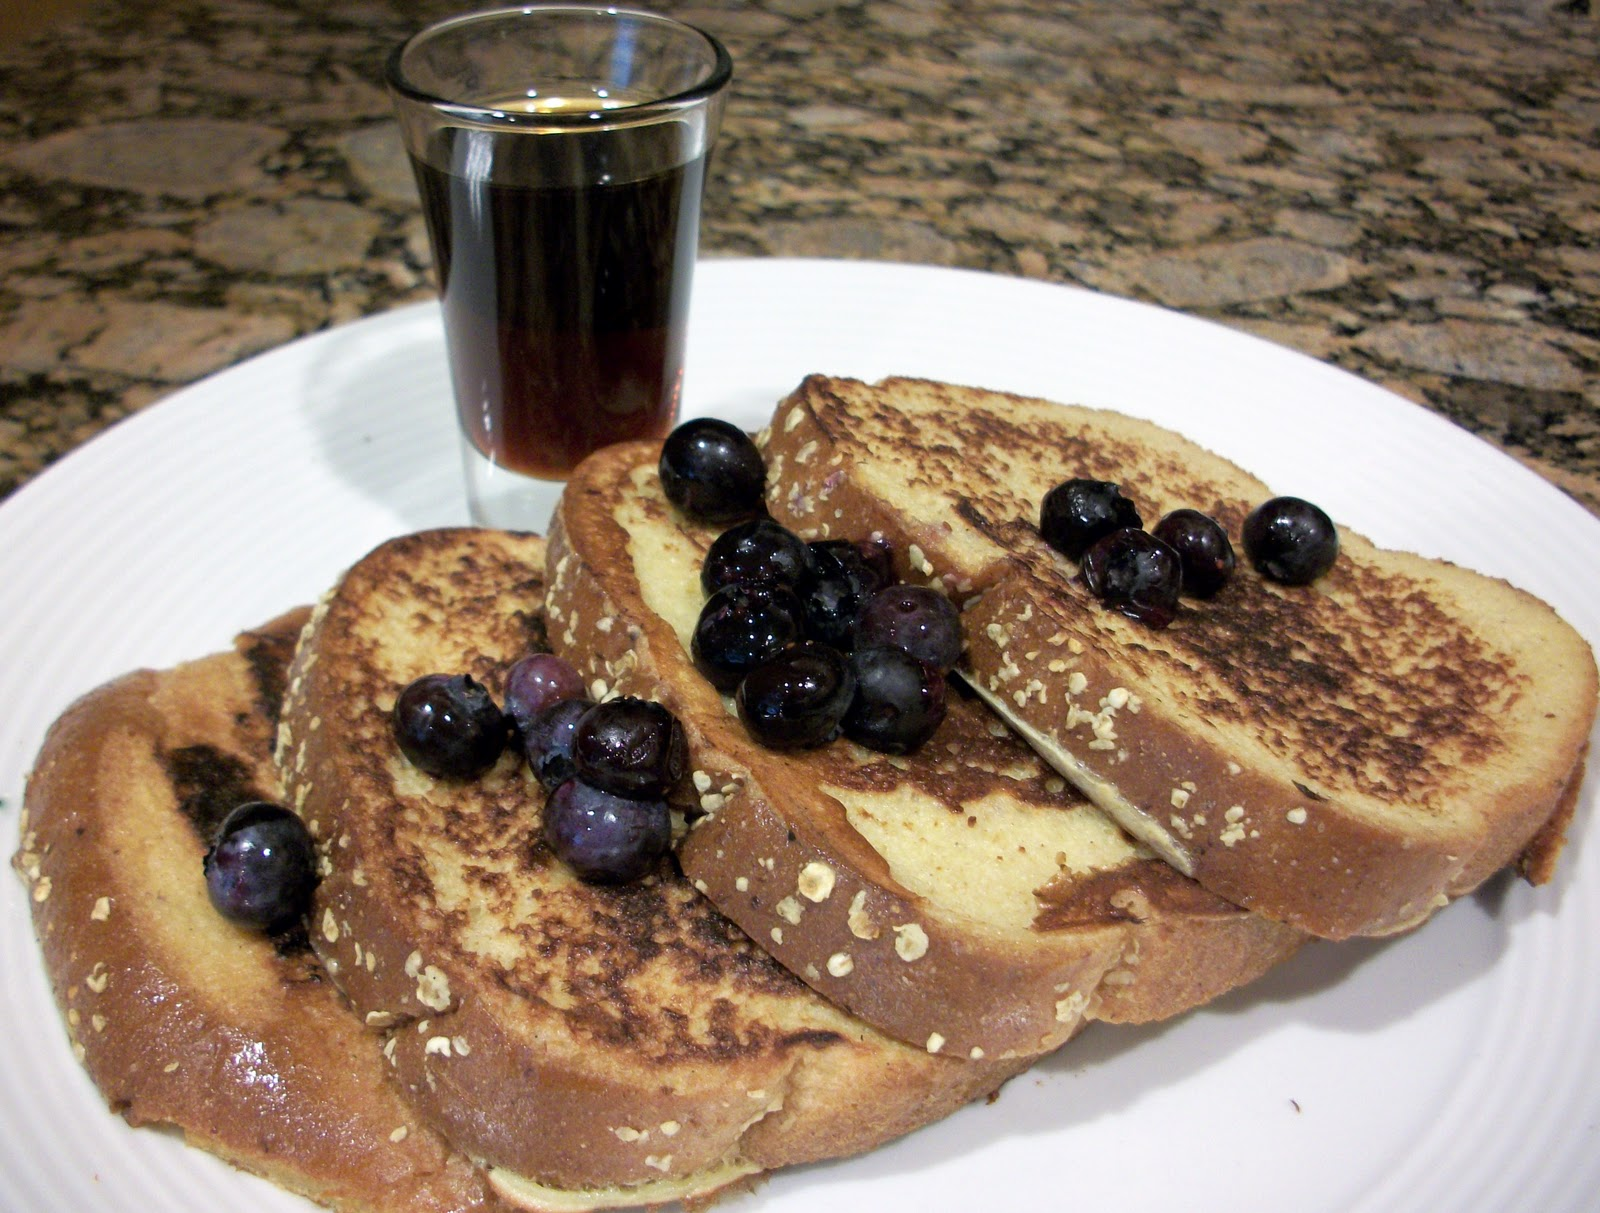 I Like To Serve This Topped With Some Berries And Just A Drizzle Of Maple  Syrup Very Easy, But Very Yummy! French Toast (with Sweetened Condensed  Milk)